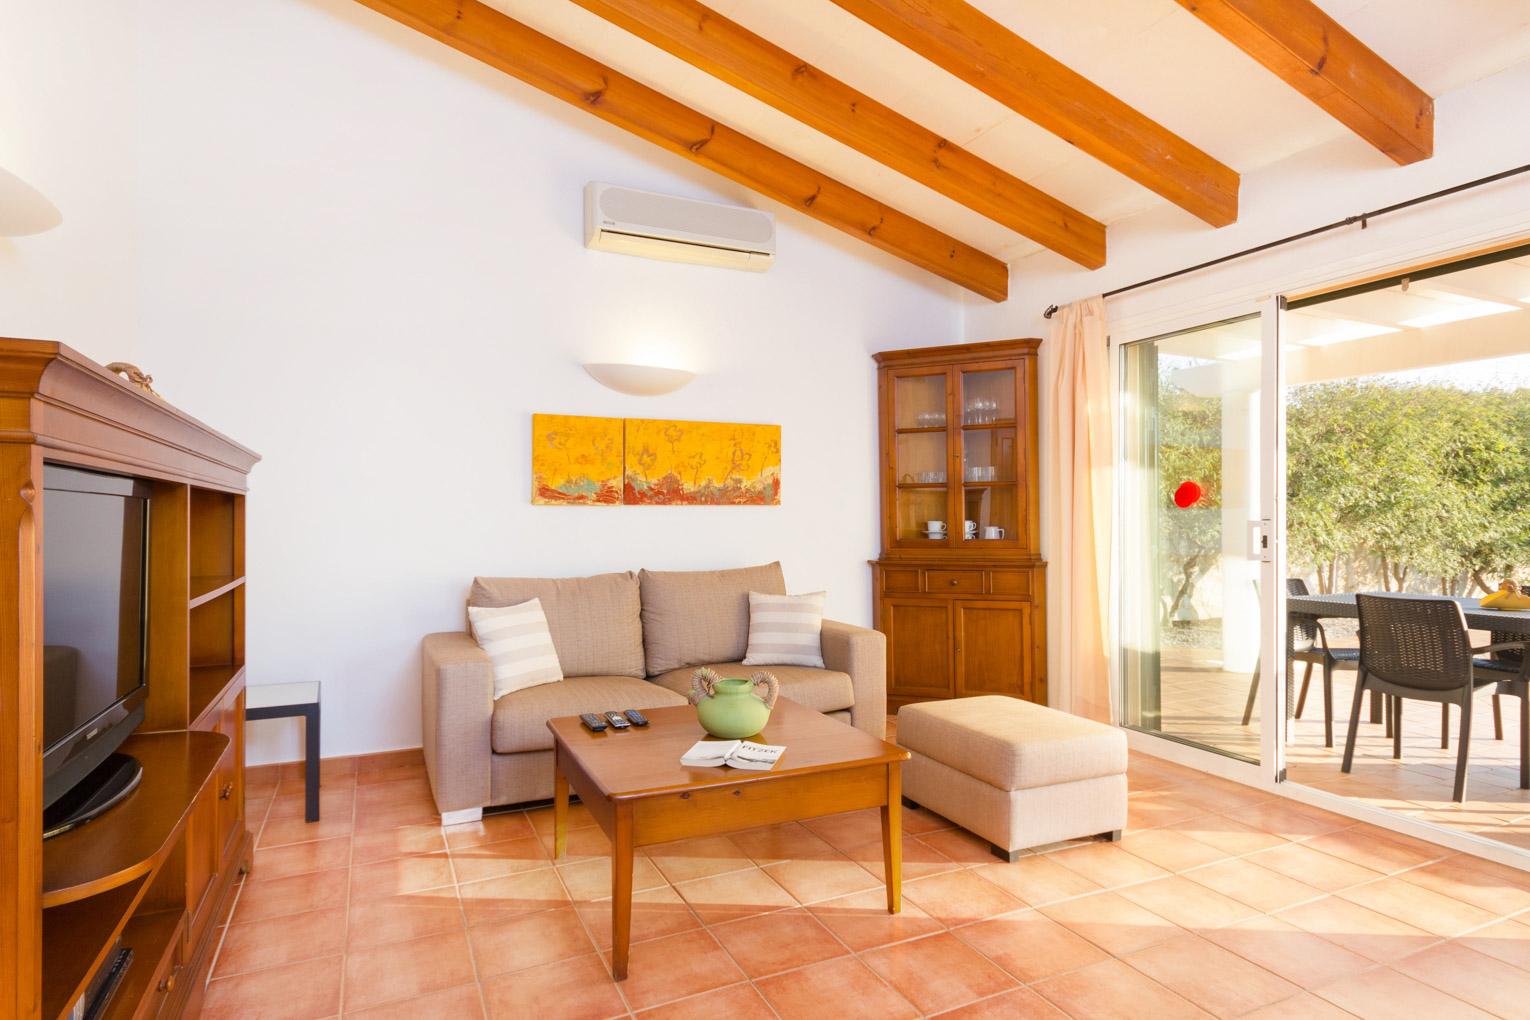 Villas Menorca Sur (2 Bedrooms) Picture 12